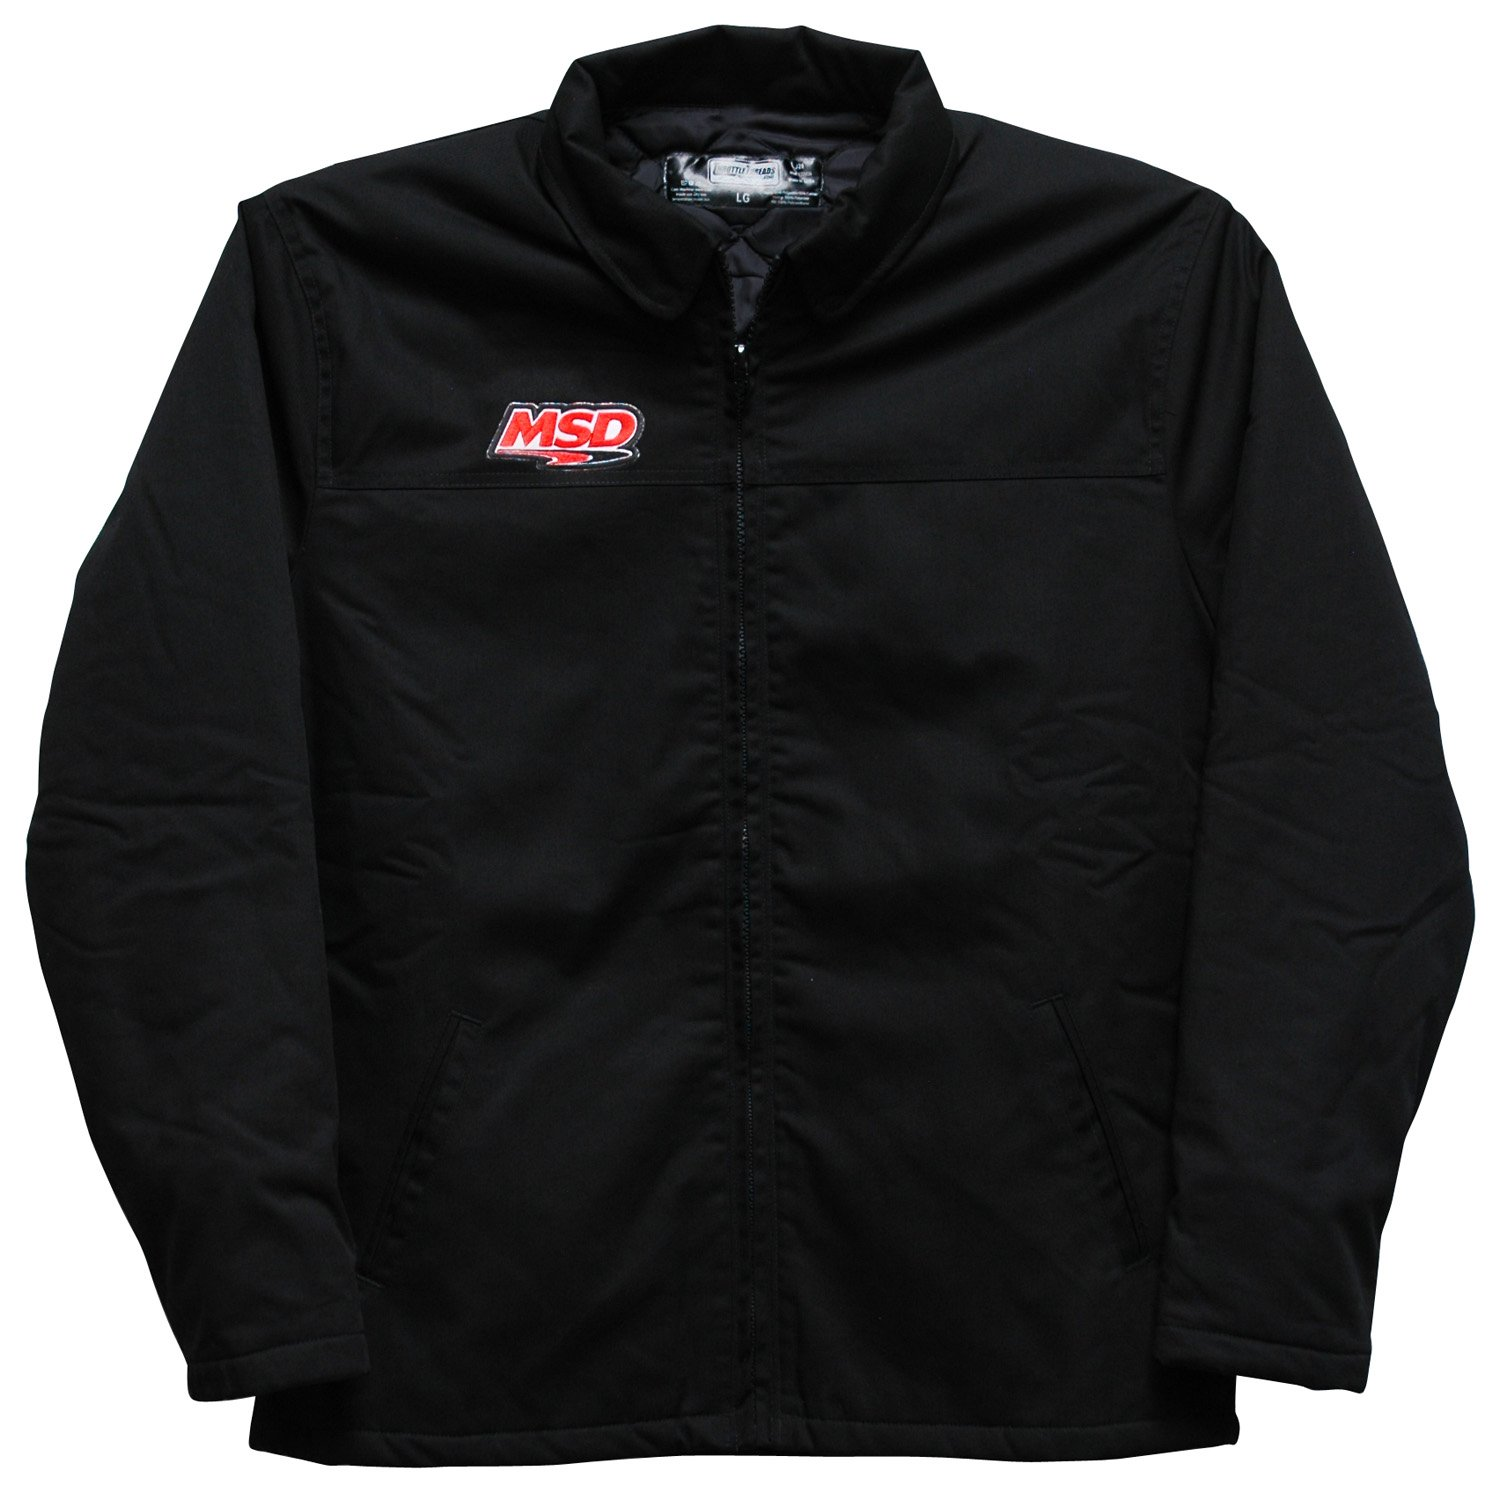 93643 - MSD Shop Jacket, X-Large Image